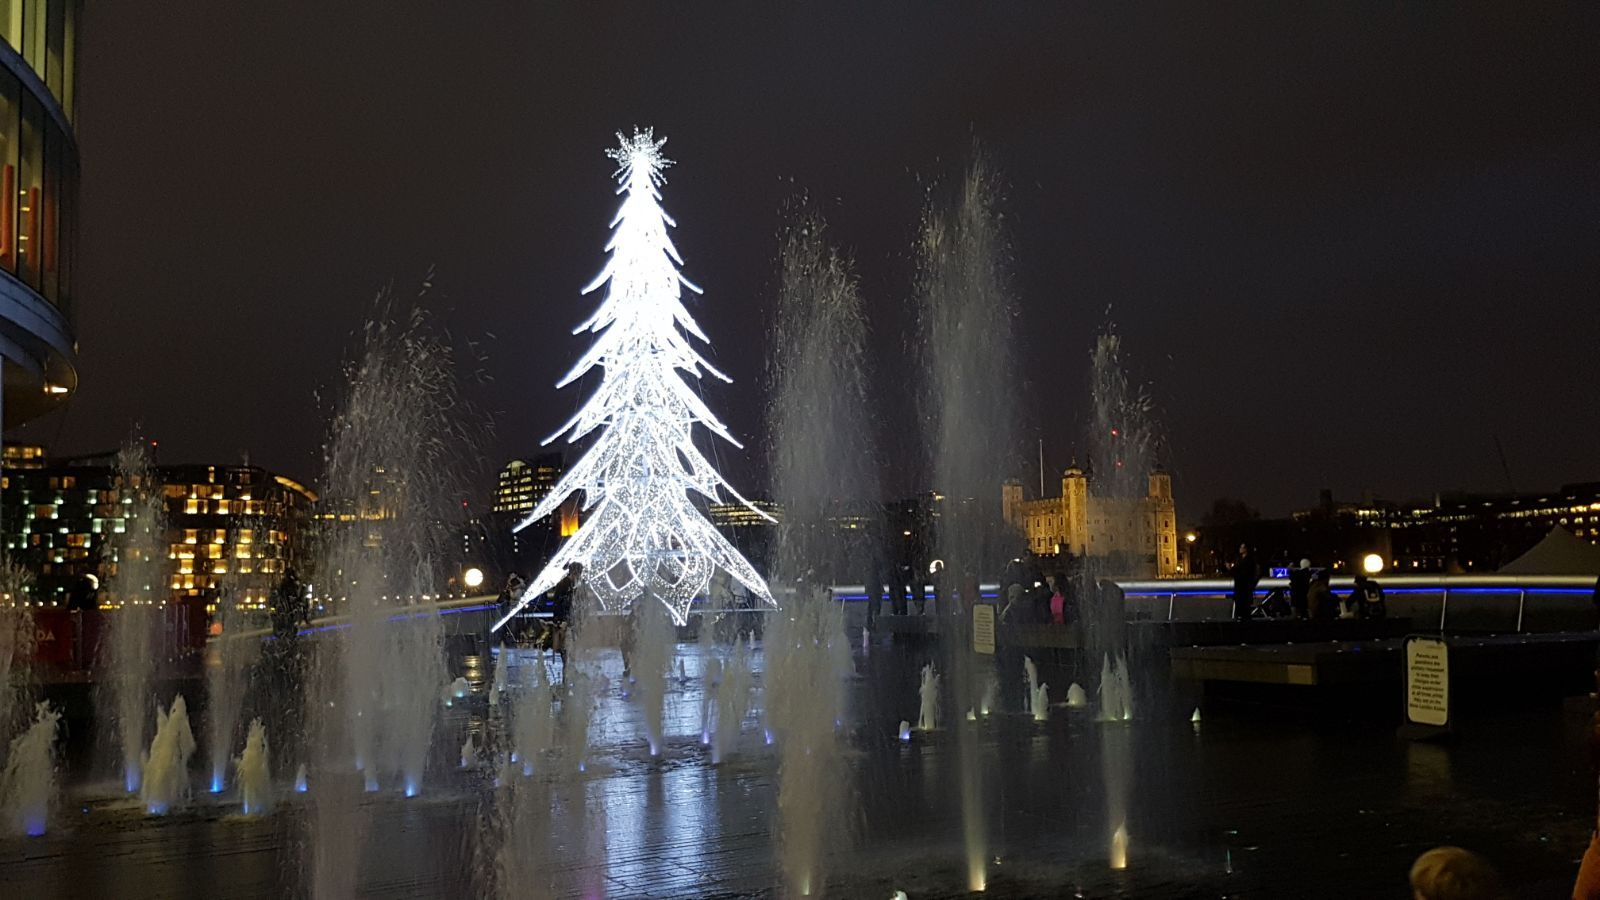 Tree Of Light At 4 More London Riverside #christmasinlondon  #londonchristmas #londonxmas #londonriviera